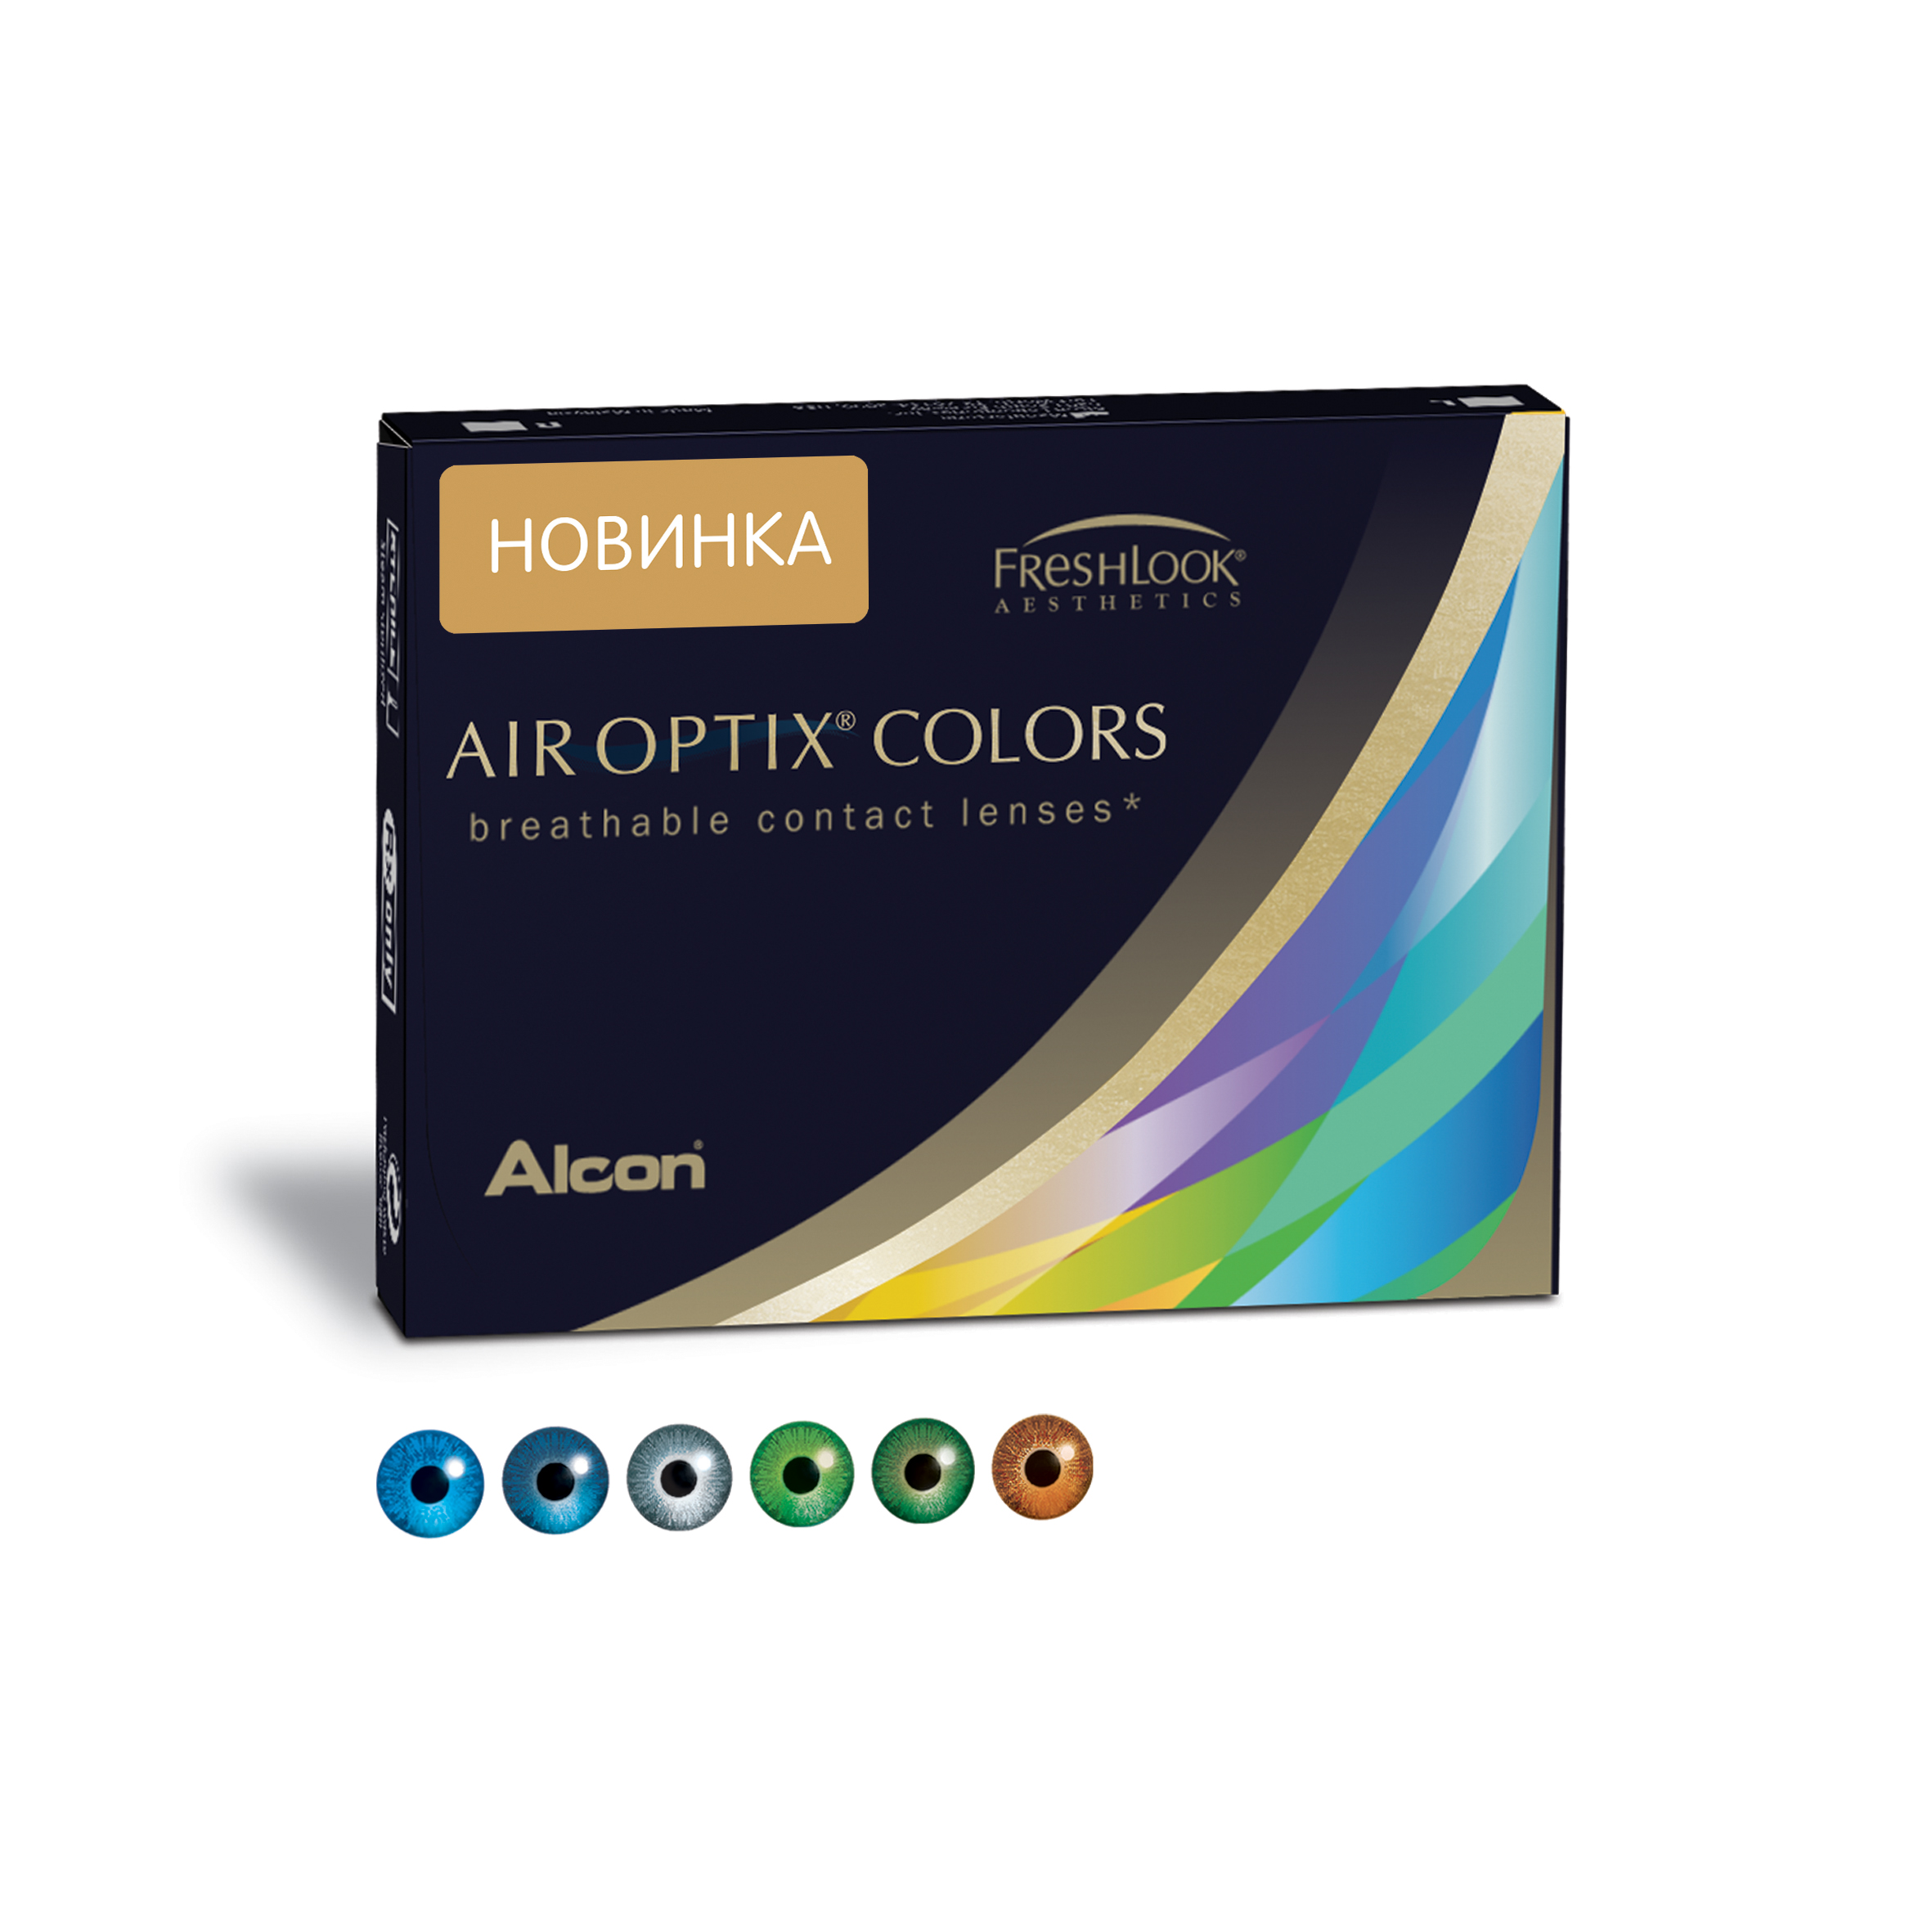 Аlcon контактные линзы Air Optix Colors 2 шт -5.00 Honey